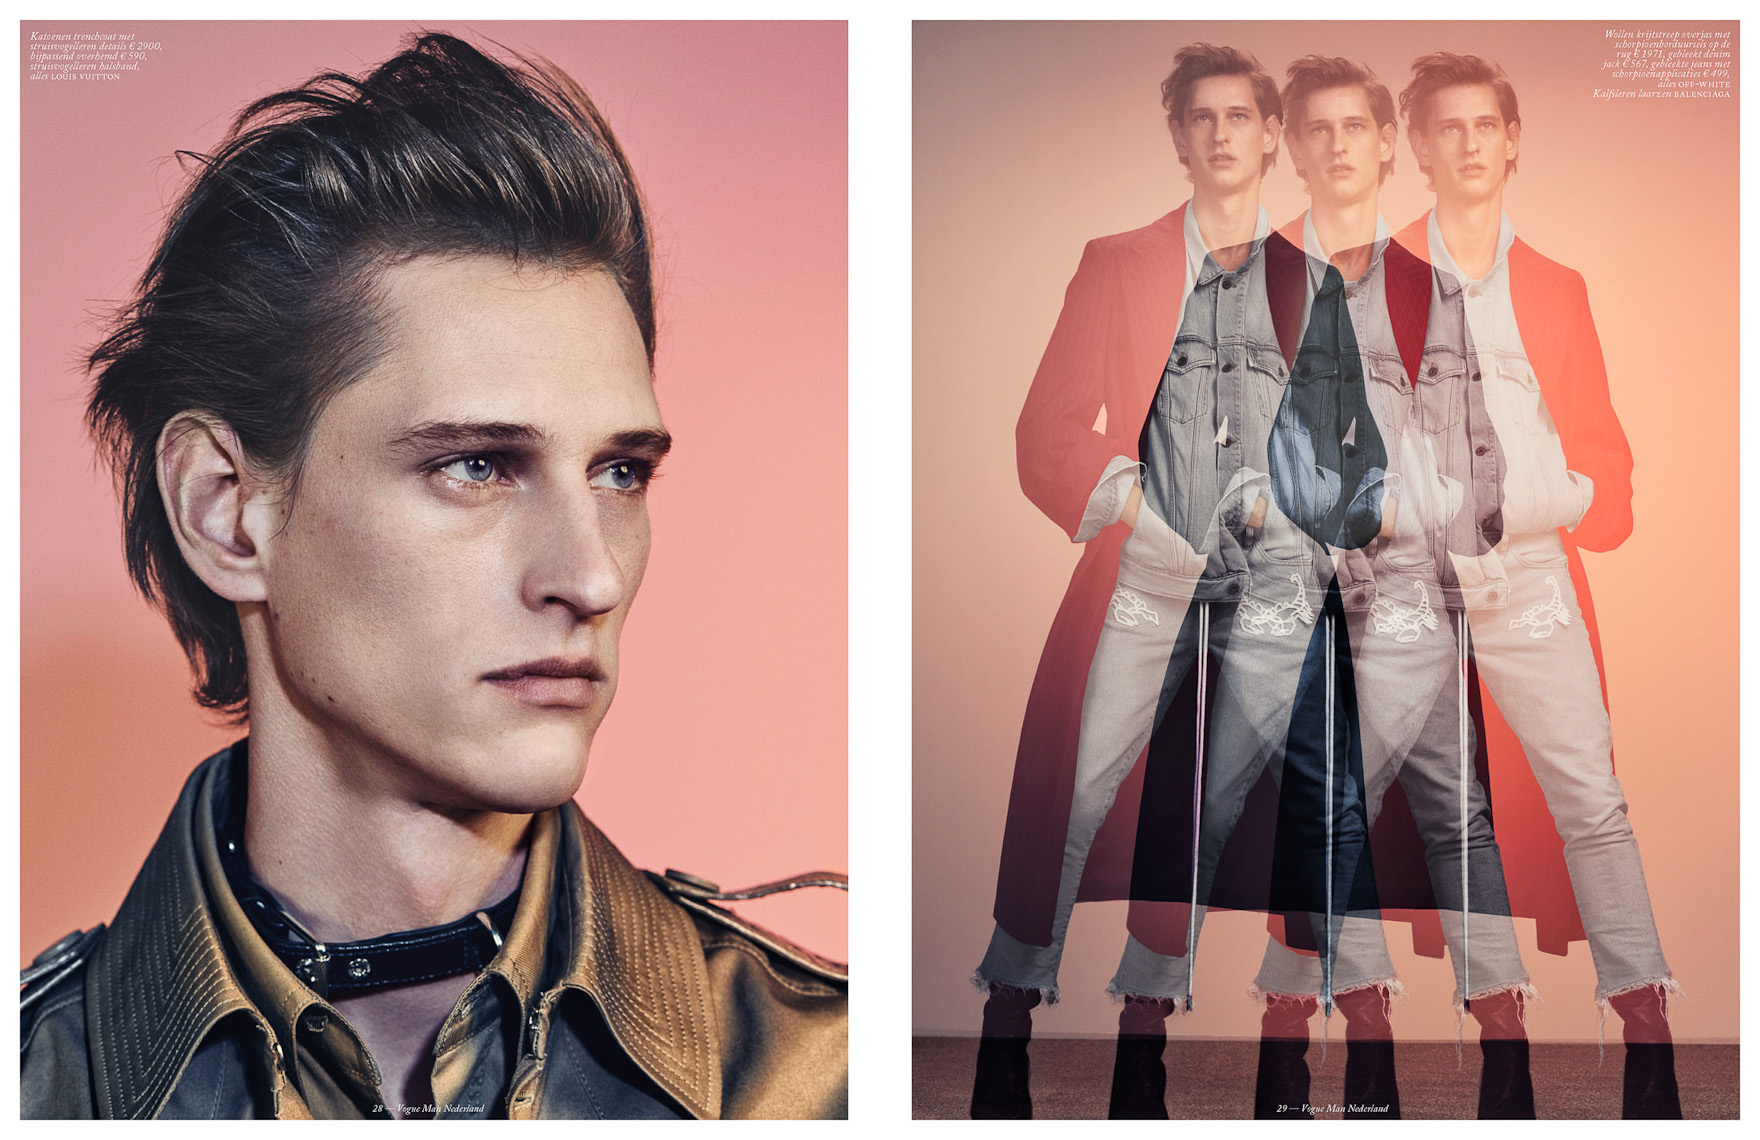 Witman Kleipool | Marc de Groot | Witman Kleipool | Marc de Groot | Vogue Man | Issue 4 - Lay-out02